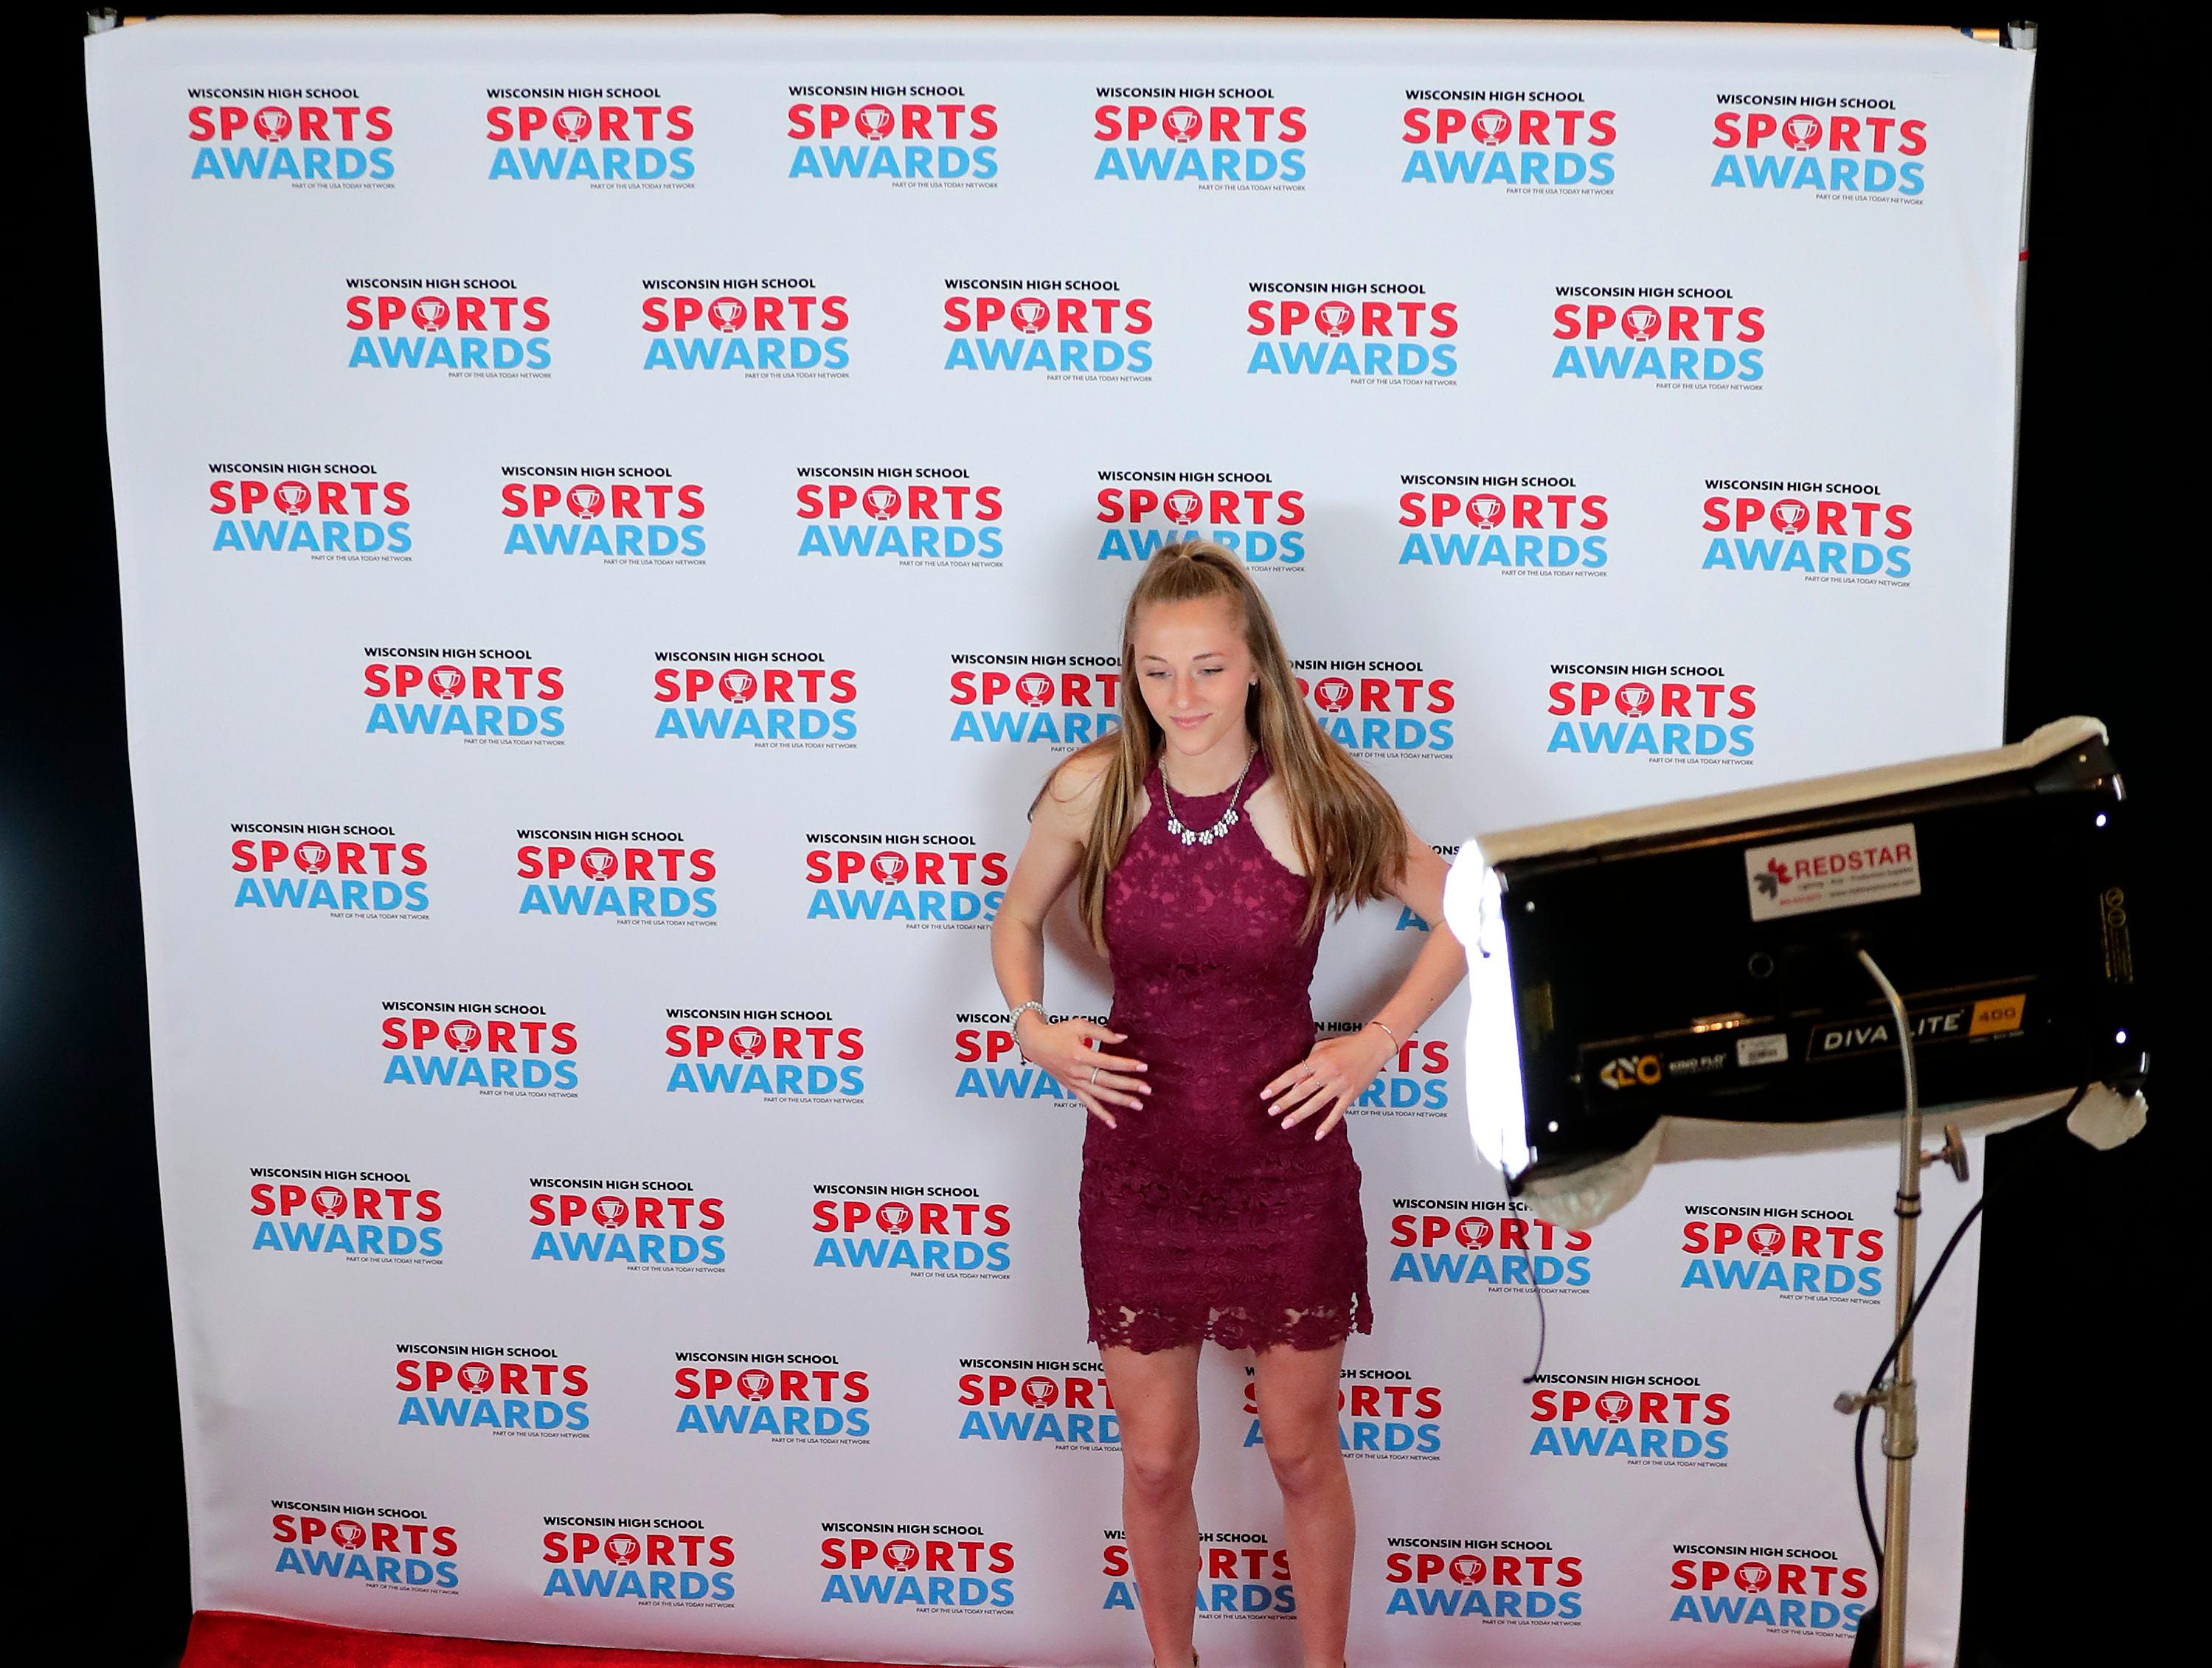 Winneconne's Emily Heytroth poses during the Wisconsin High School Sports Awards show at the Fox Cities Performing Arts Center on Wednesday, May 8, 2019, in Appleton, Wis. Olympic champion Michael Phelps was the guest speaker. The annual event was presented by USA TODAY NETWORK-Wisconsin.  Wm. Glasheen/USA TODAY NETWORK-Wisconsin.